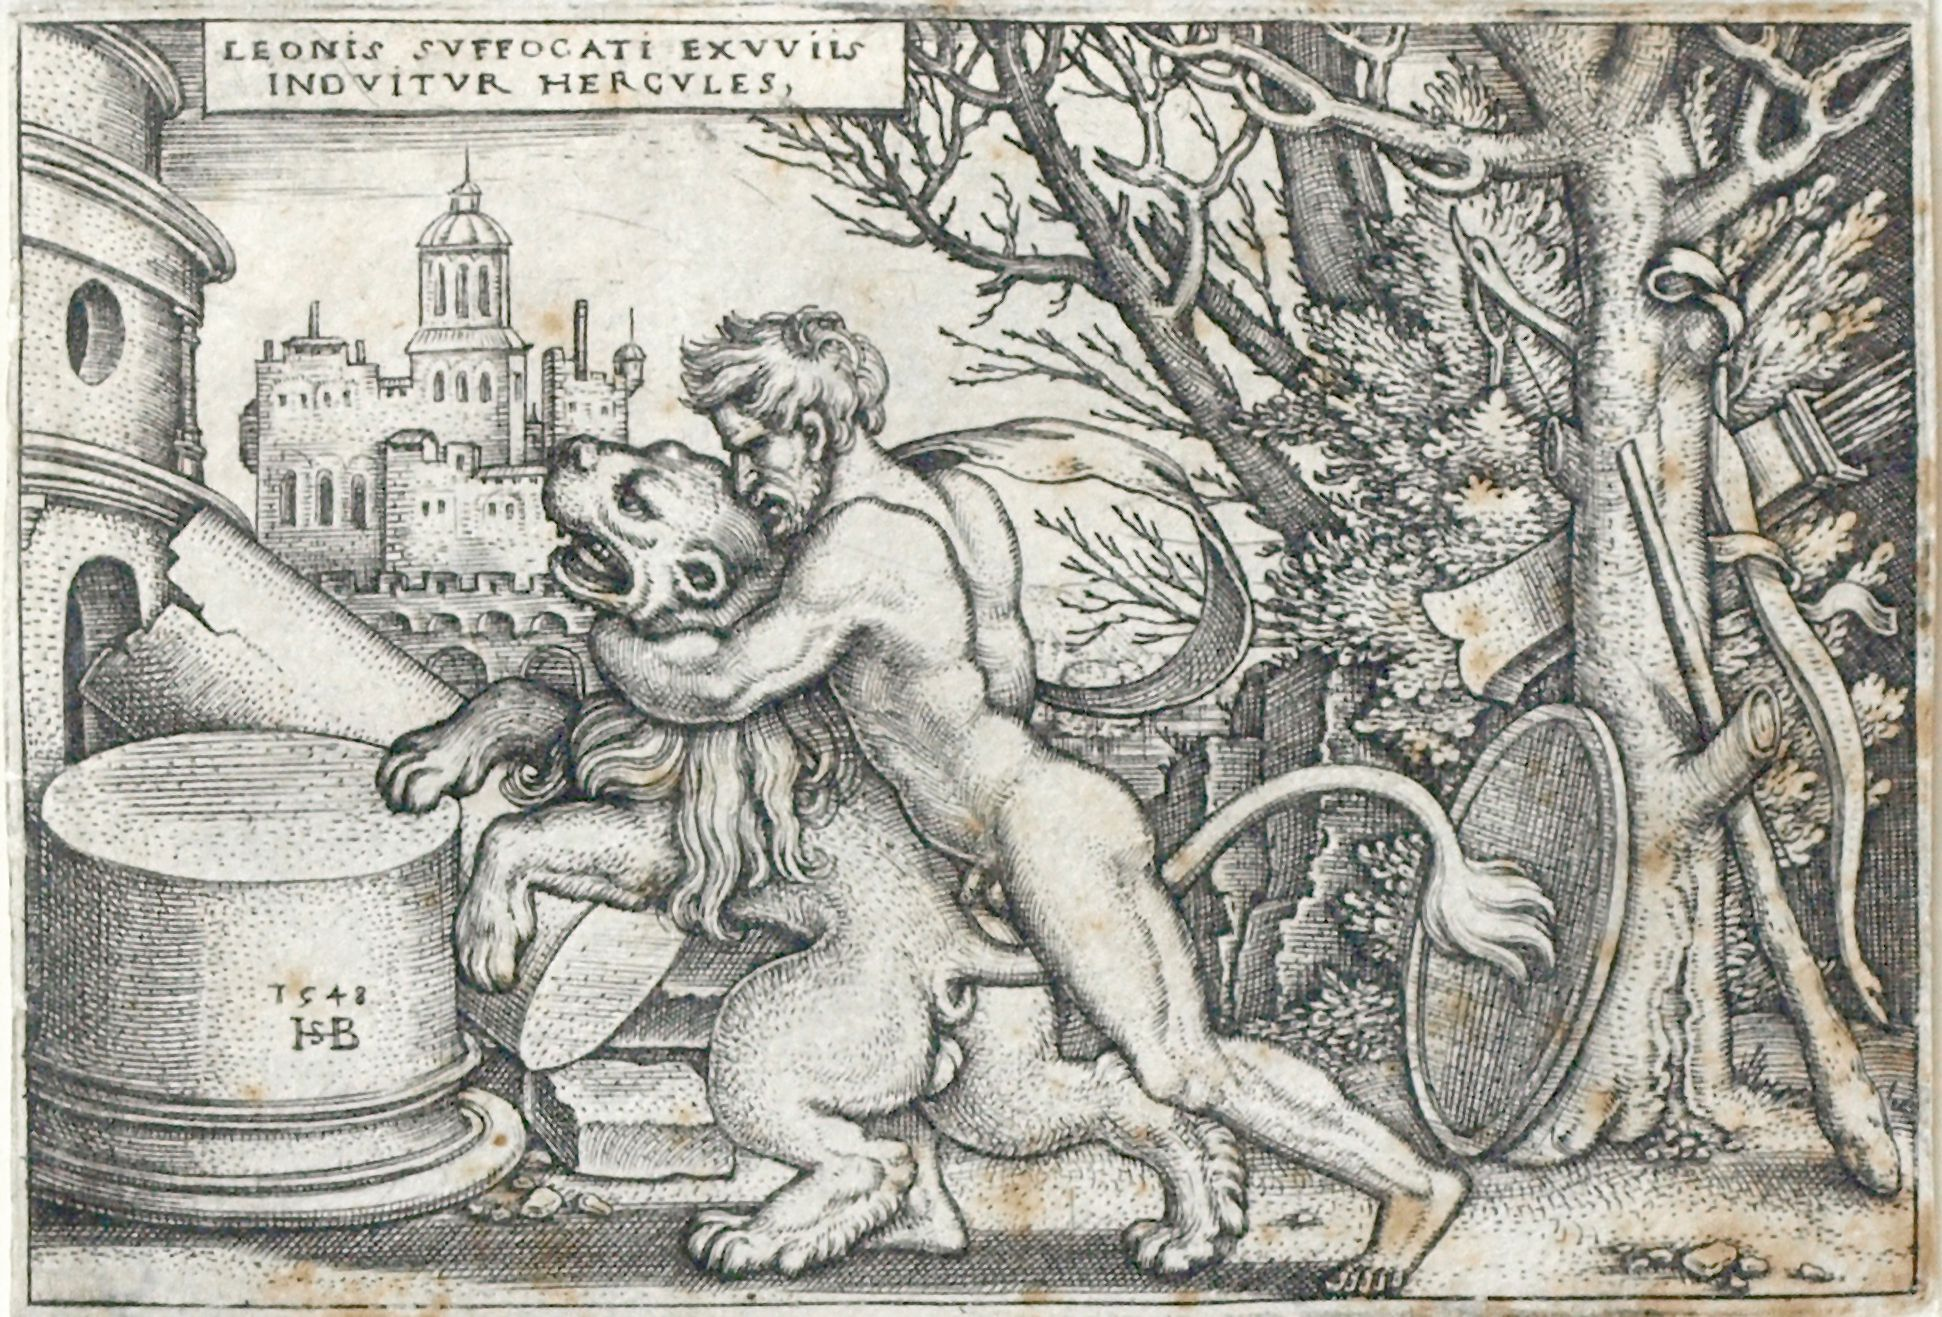 The deeds of Hercules Hercules strangles the Nemeic Lion to death, 1548, 52 x 77 mm